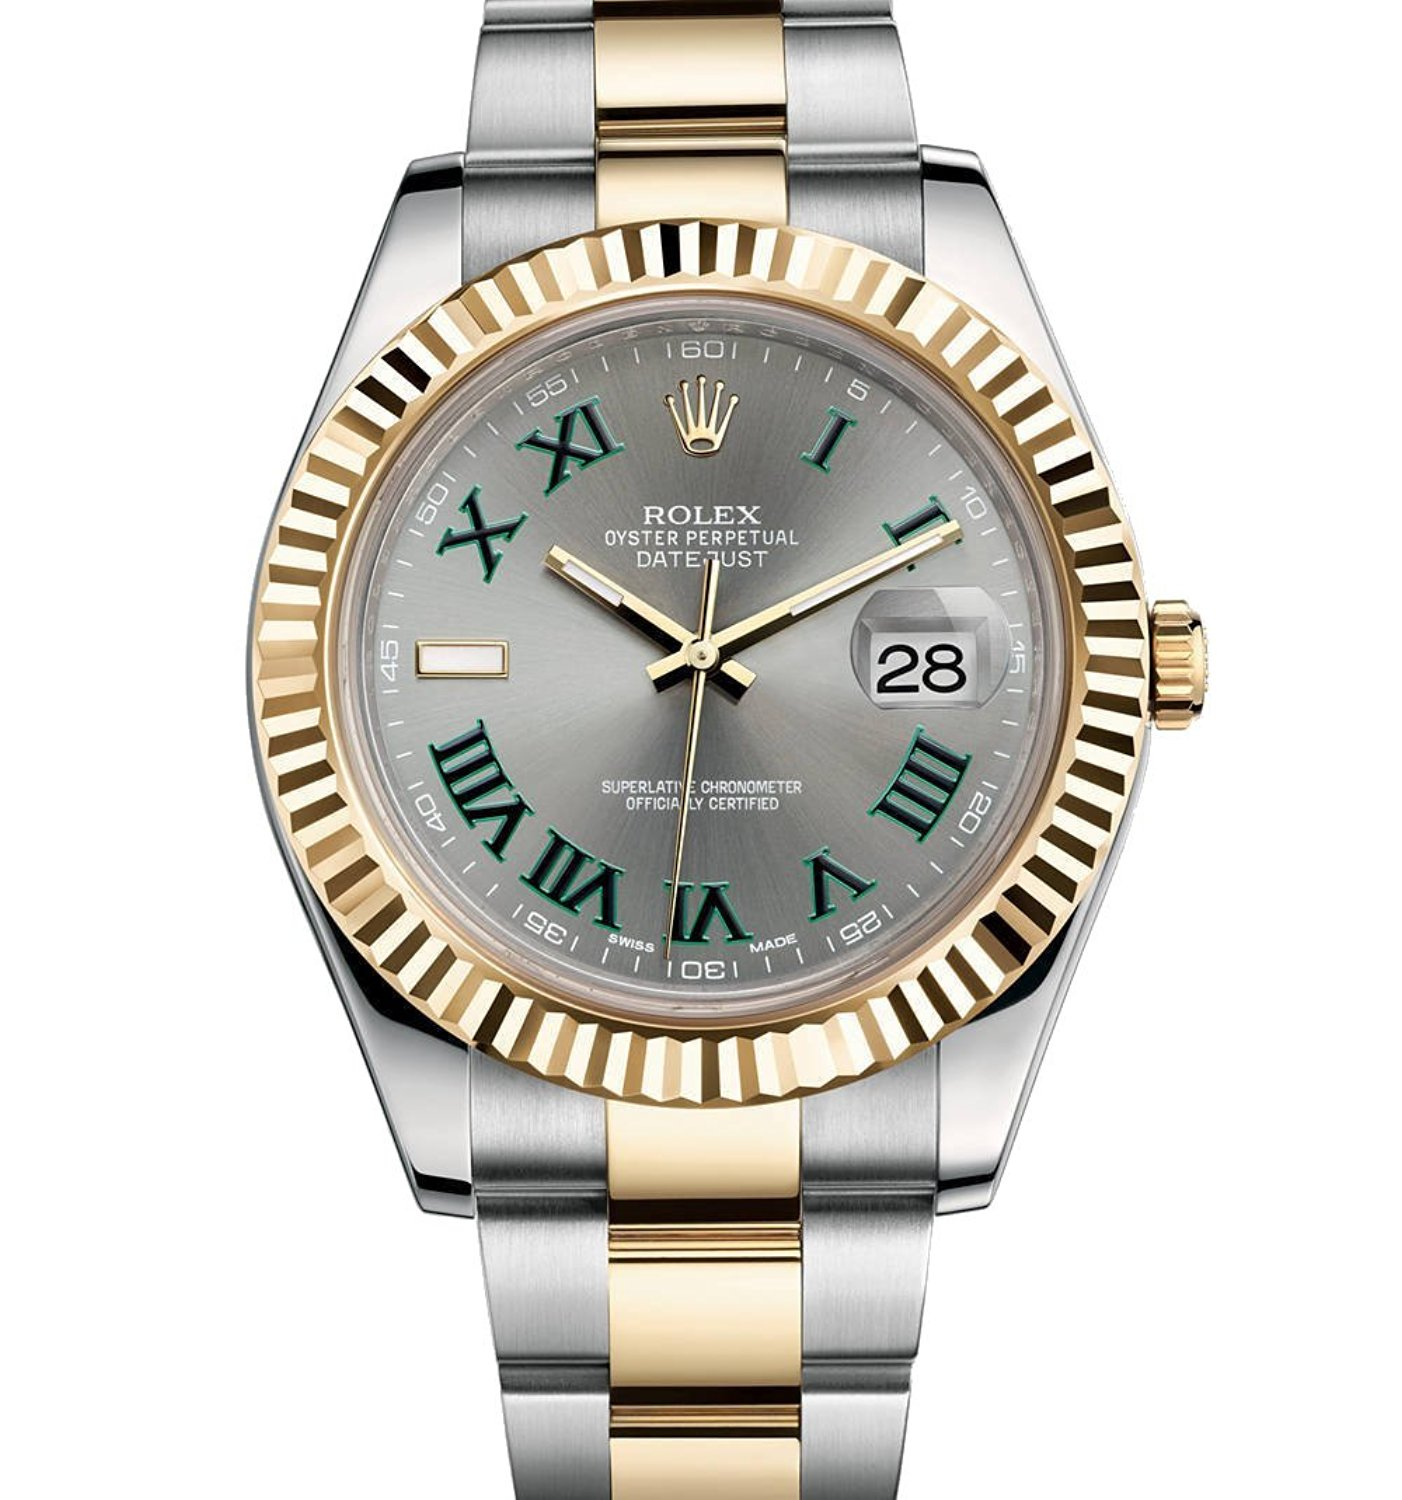 ROLEX DATEJUST II 2 STEEL & YELLOW GOLD WATCH GREY AND GREEN...